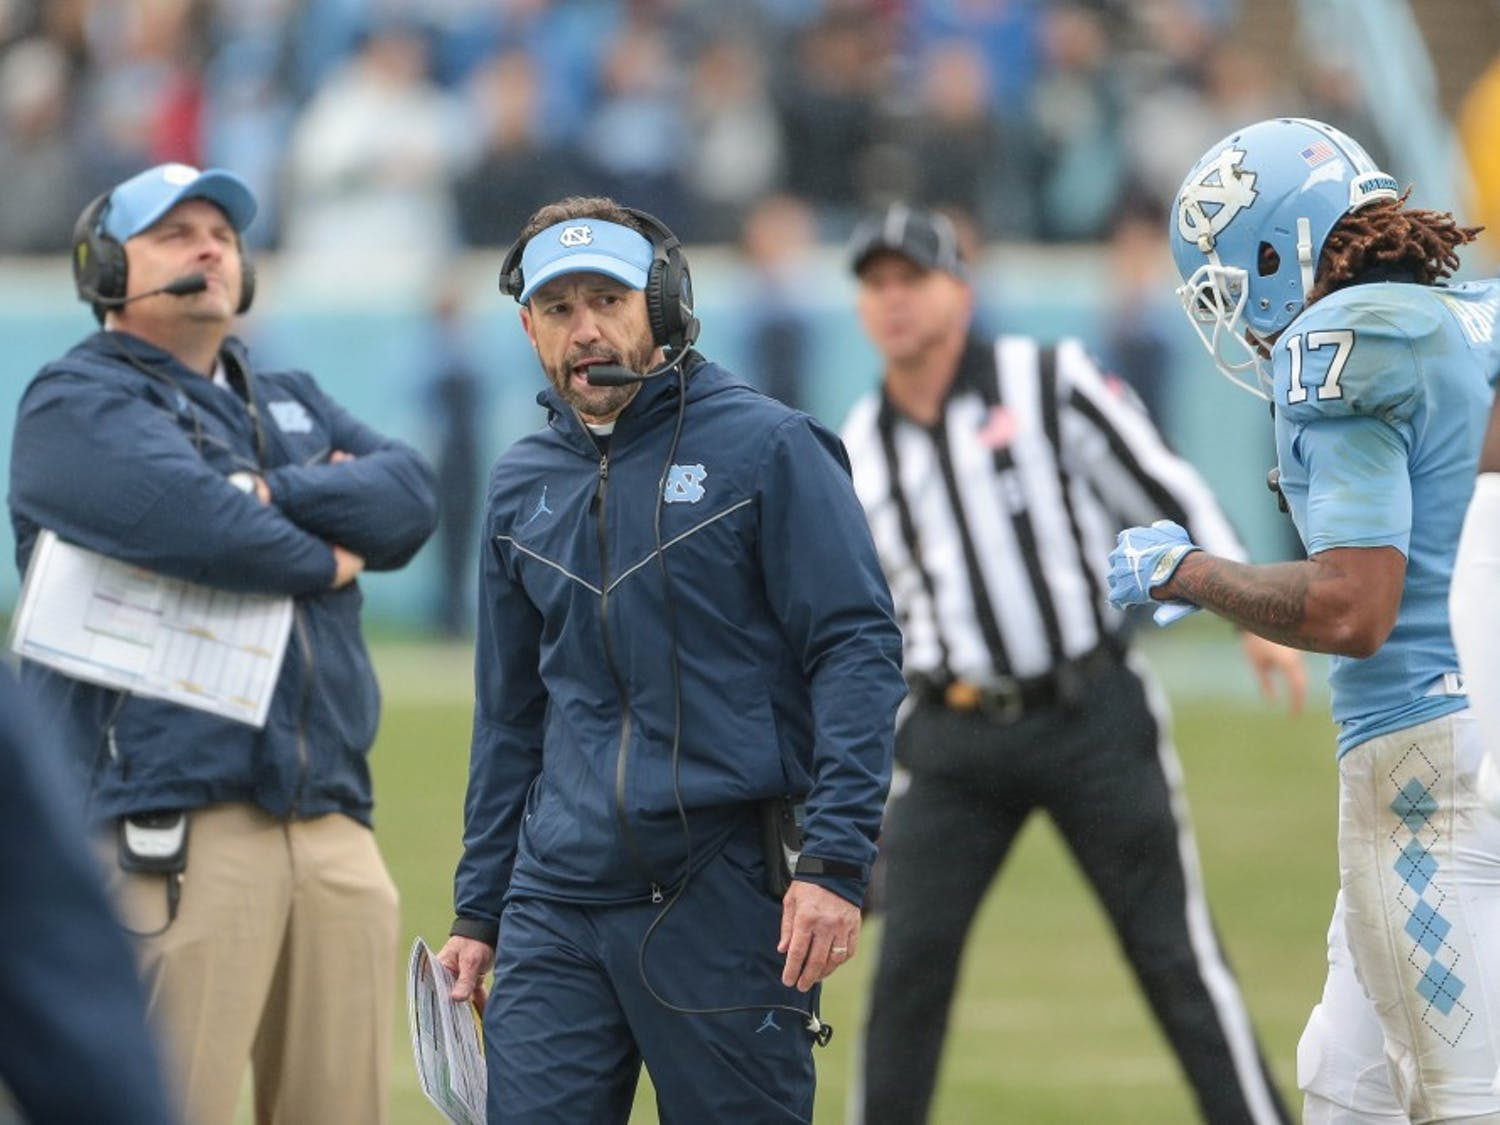 Larry Fedora coaches during the 34-28 loss to NC State on Saturday, Nov. 24, 2018 in Kenan Memorial Stadium.